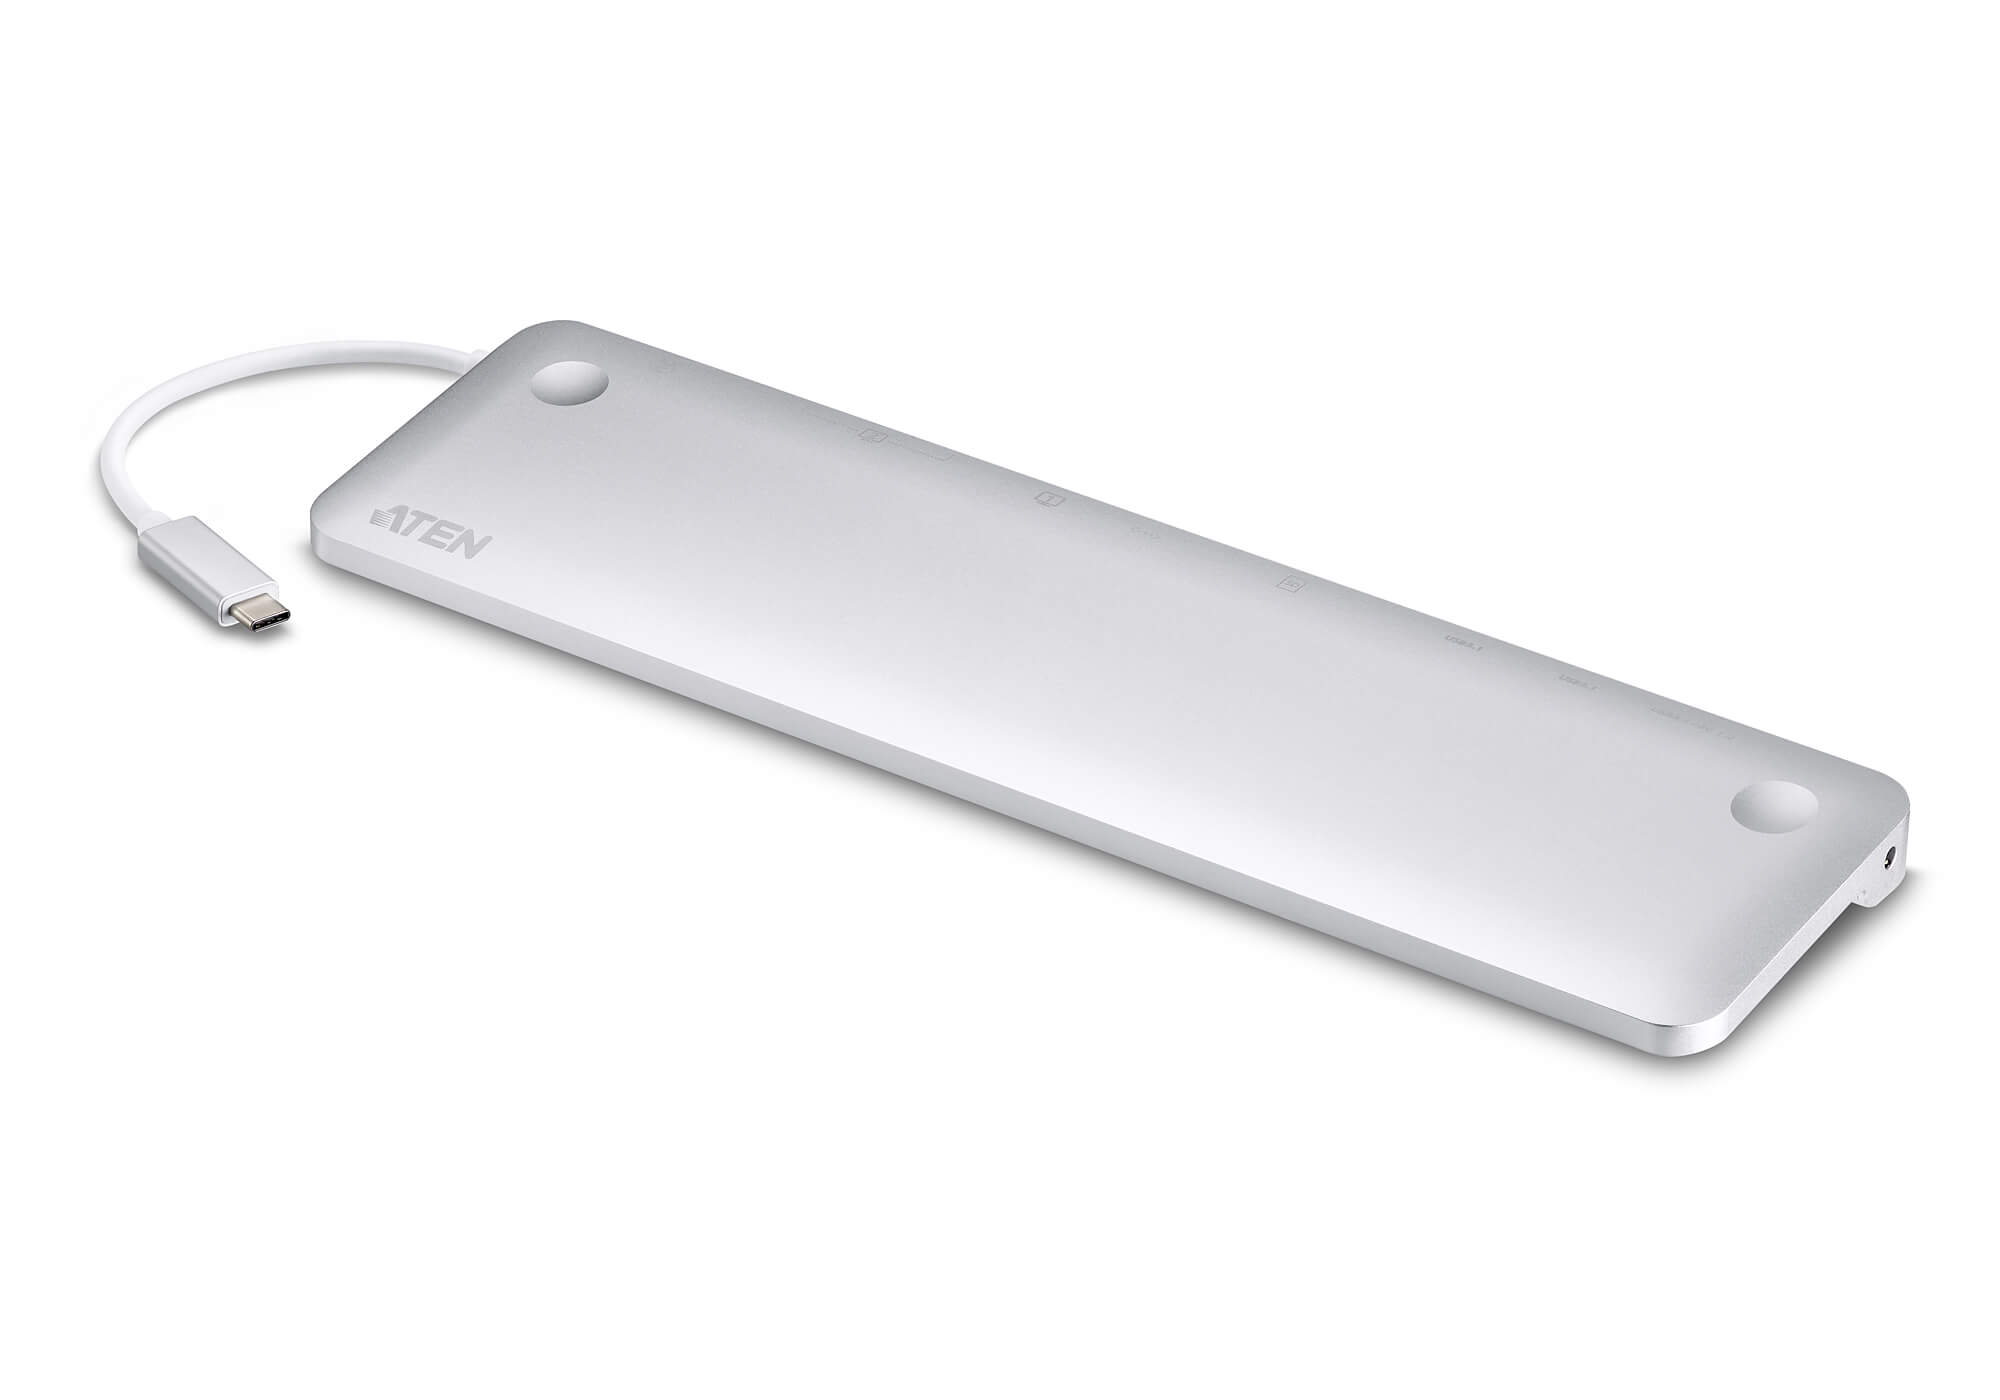 Wieloportowa stacja dokująca USB-C z Power Pass-Through-1